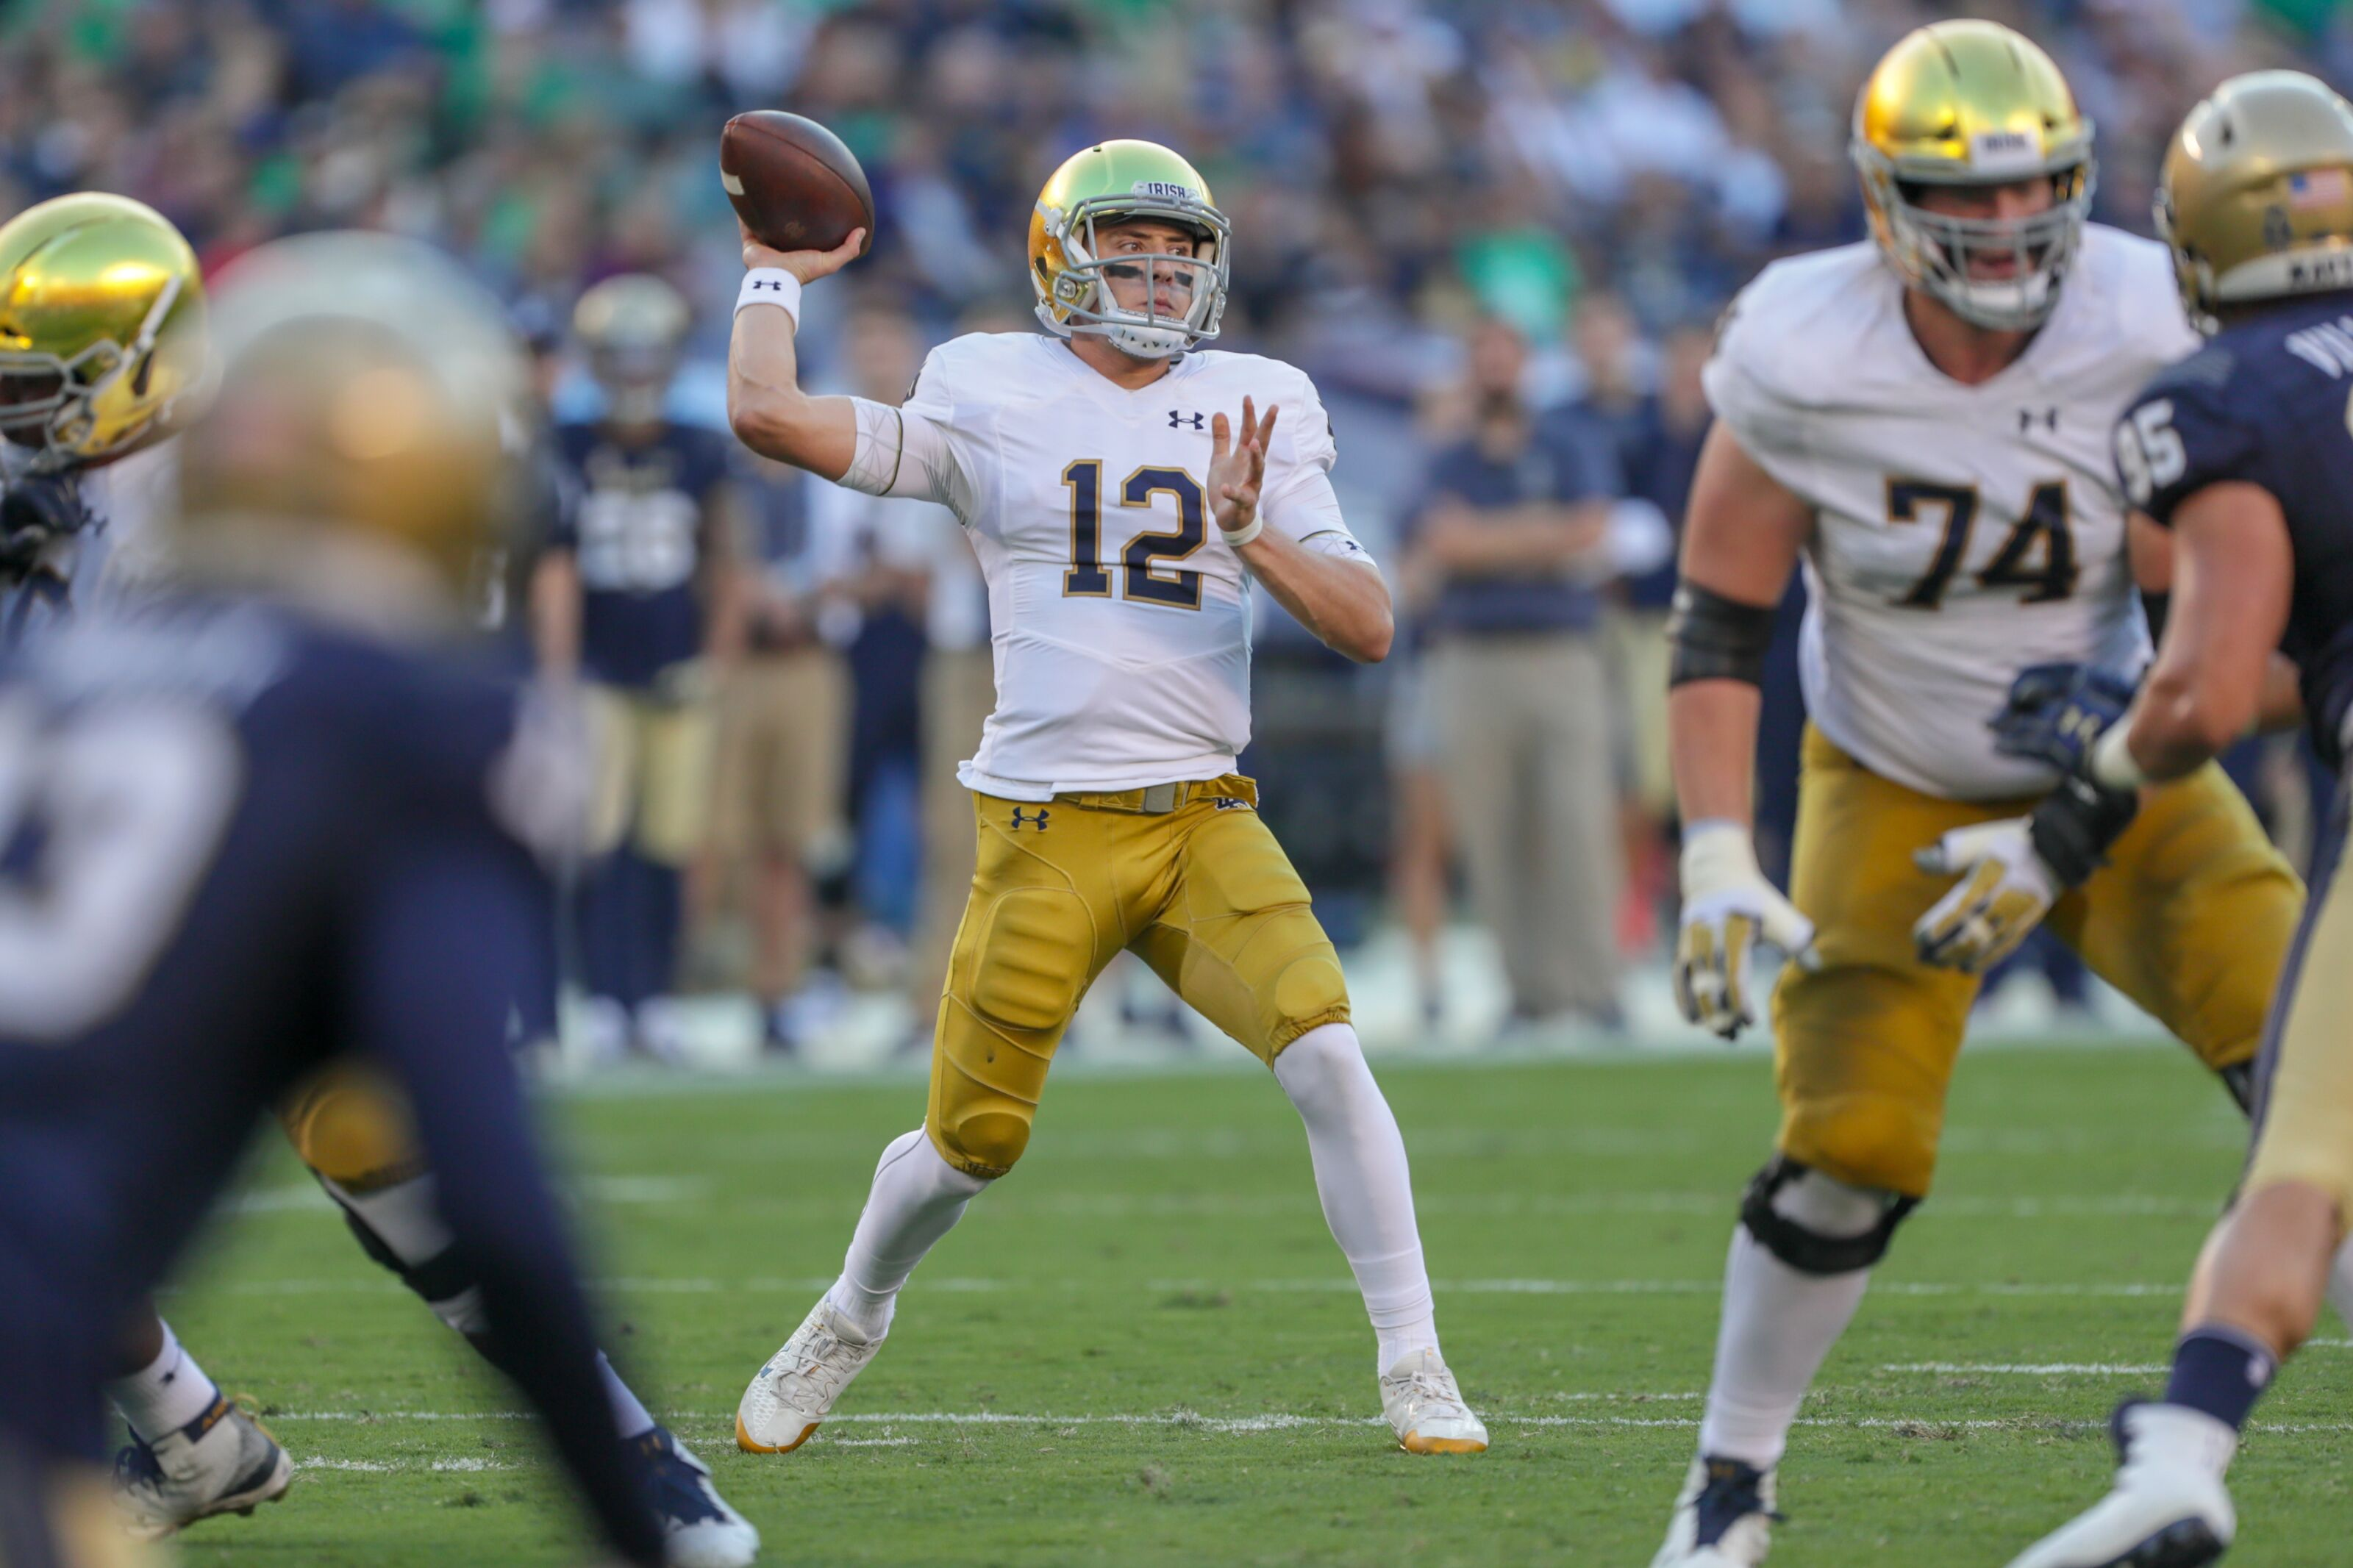 Notre Dame Football: 5 reasons Irish will beat Syracuse in Week 12